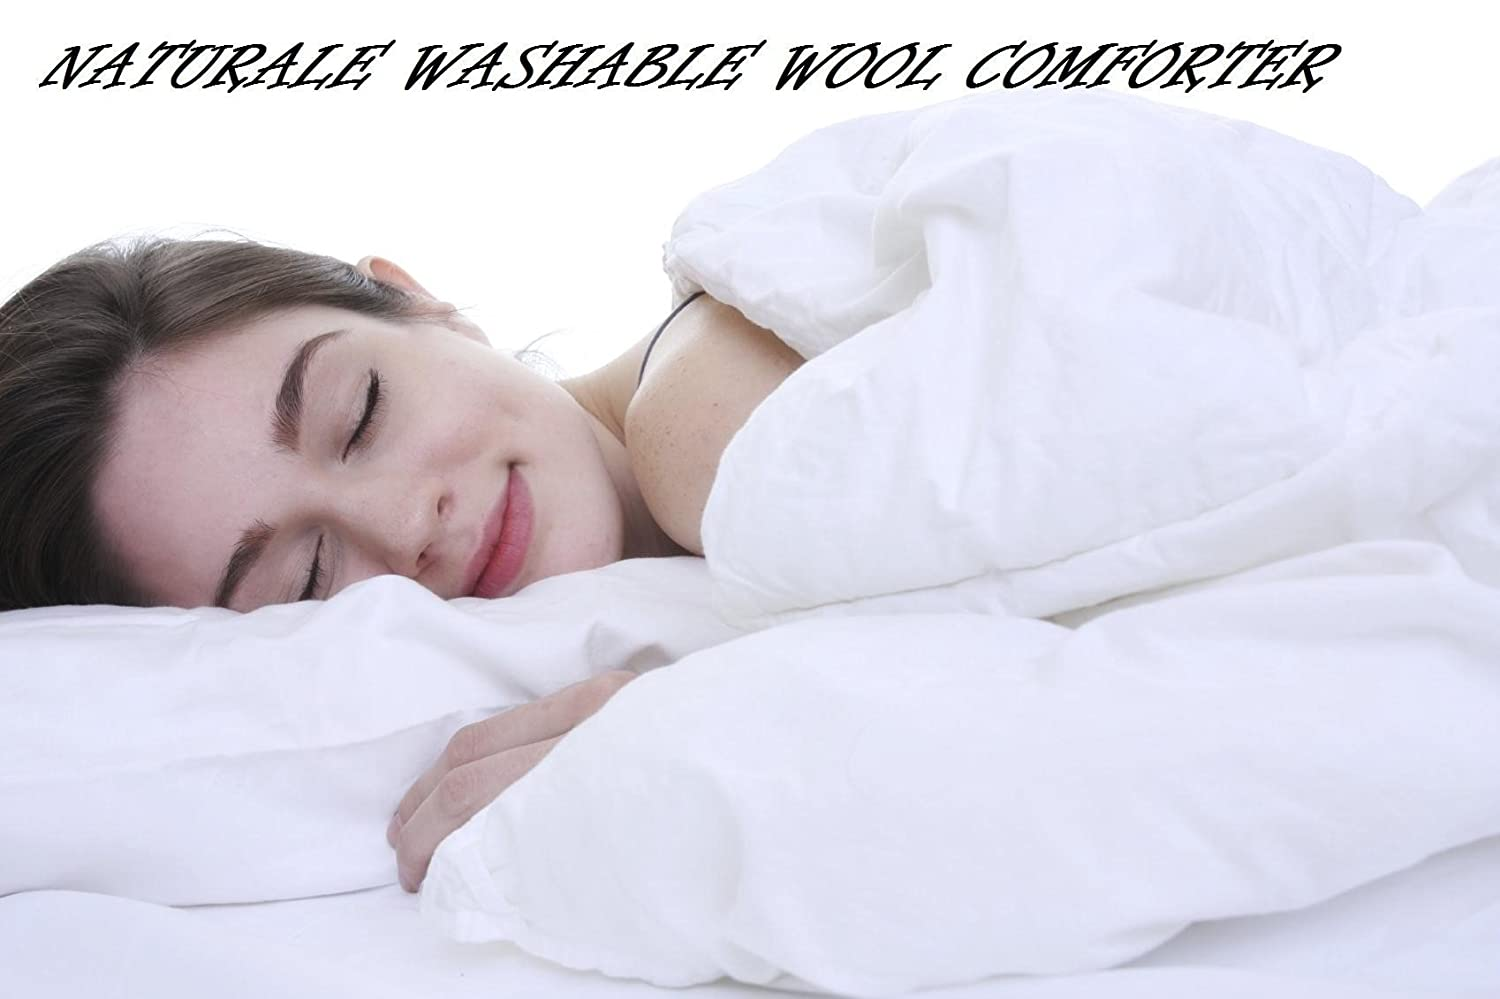 Amazon.com: Naturalé Premium Extra Weight 100% Australian Wool Comforter.  Clearance Sale: Home & Kitchen